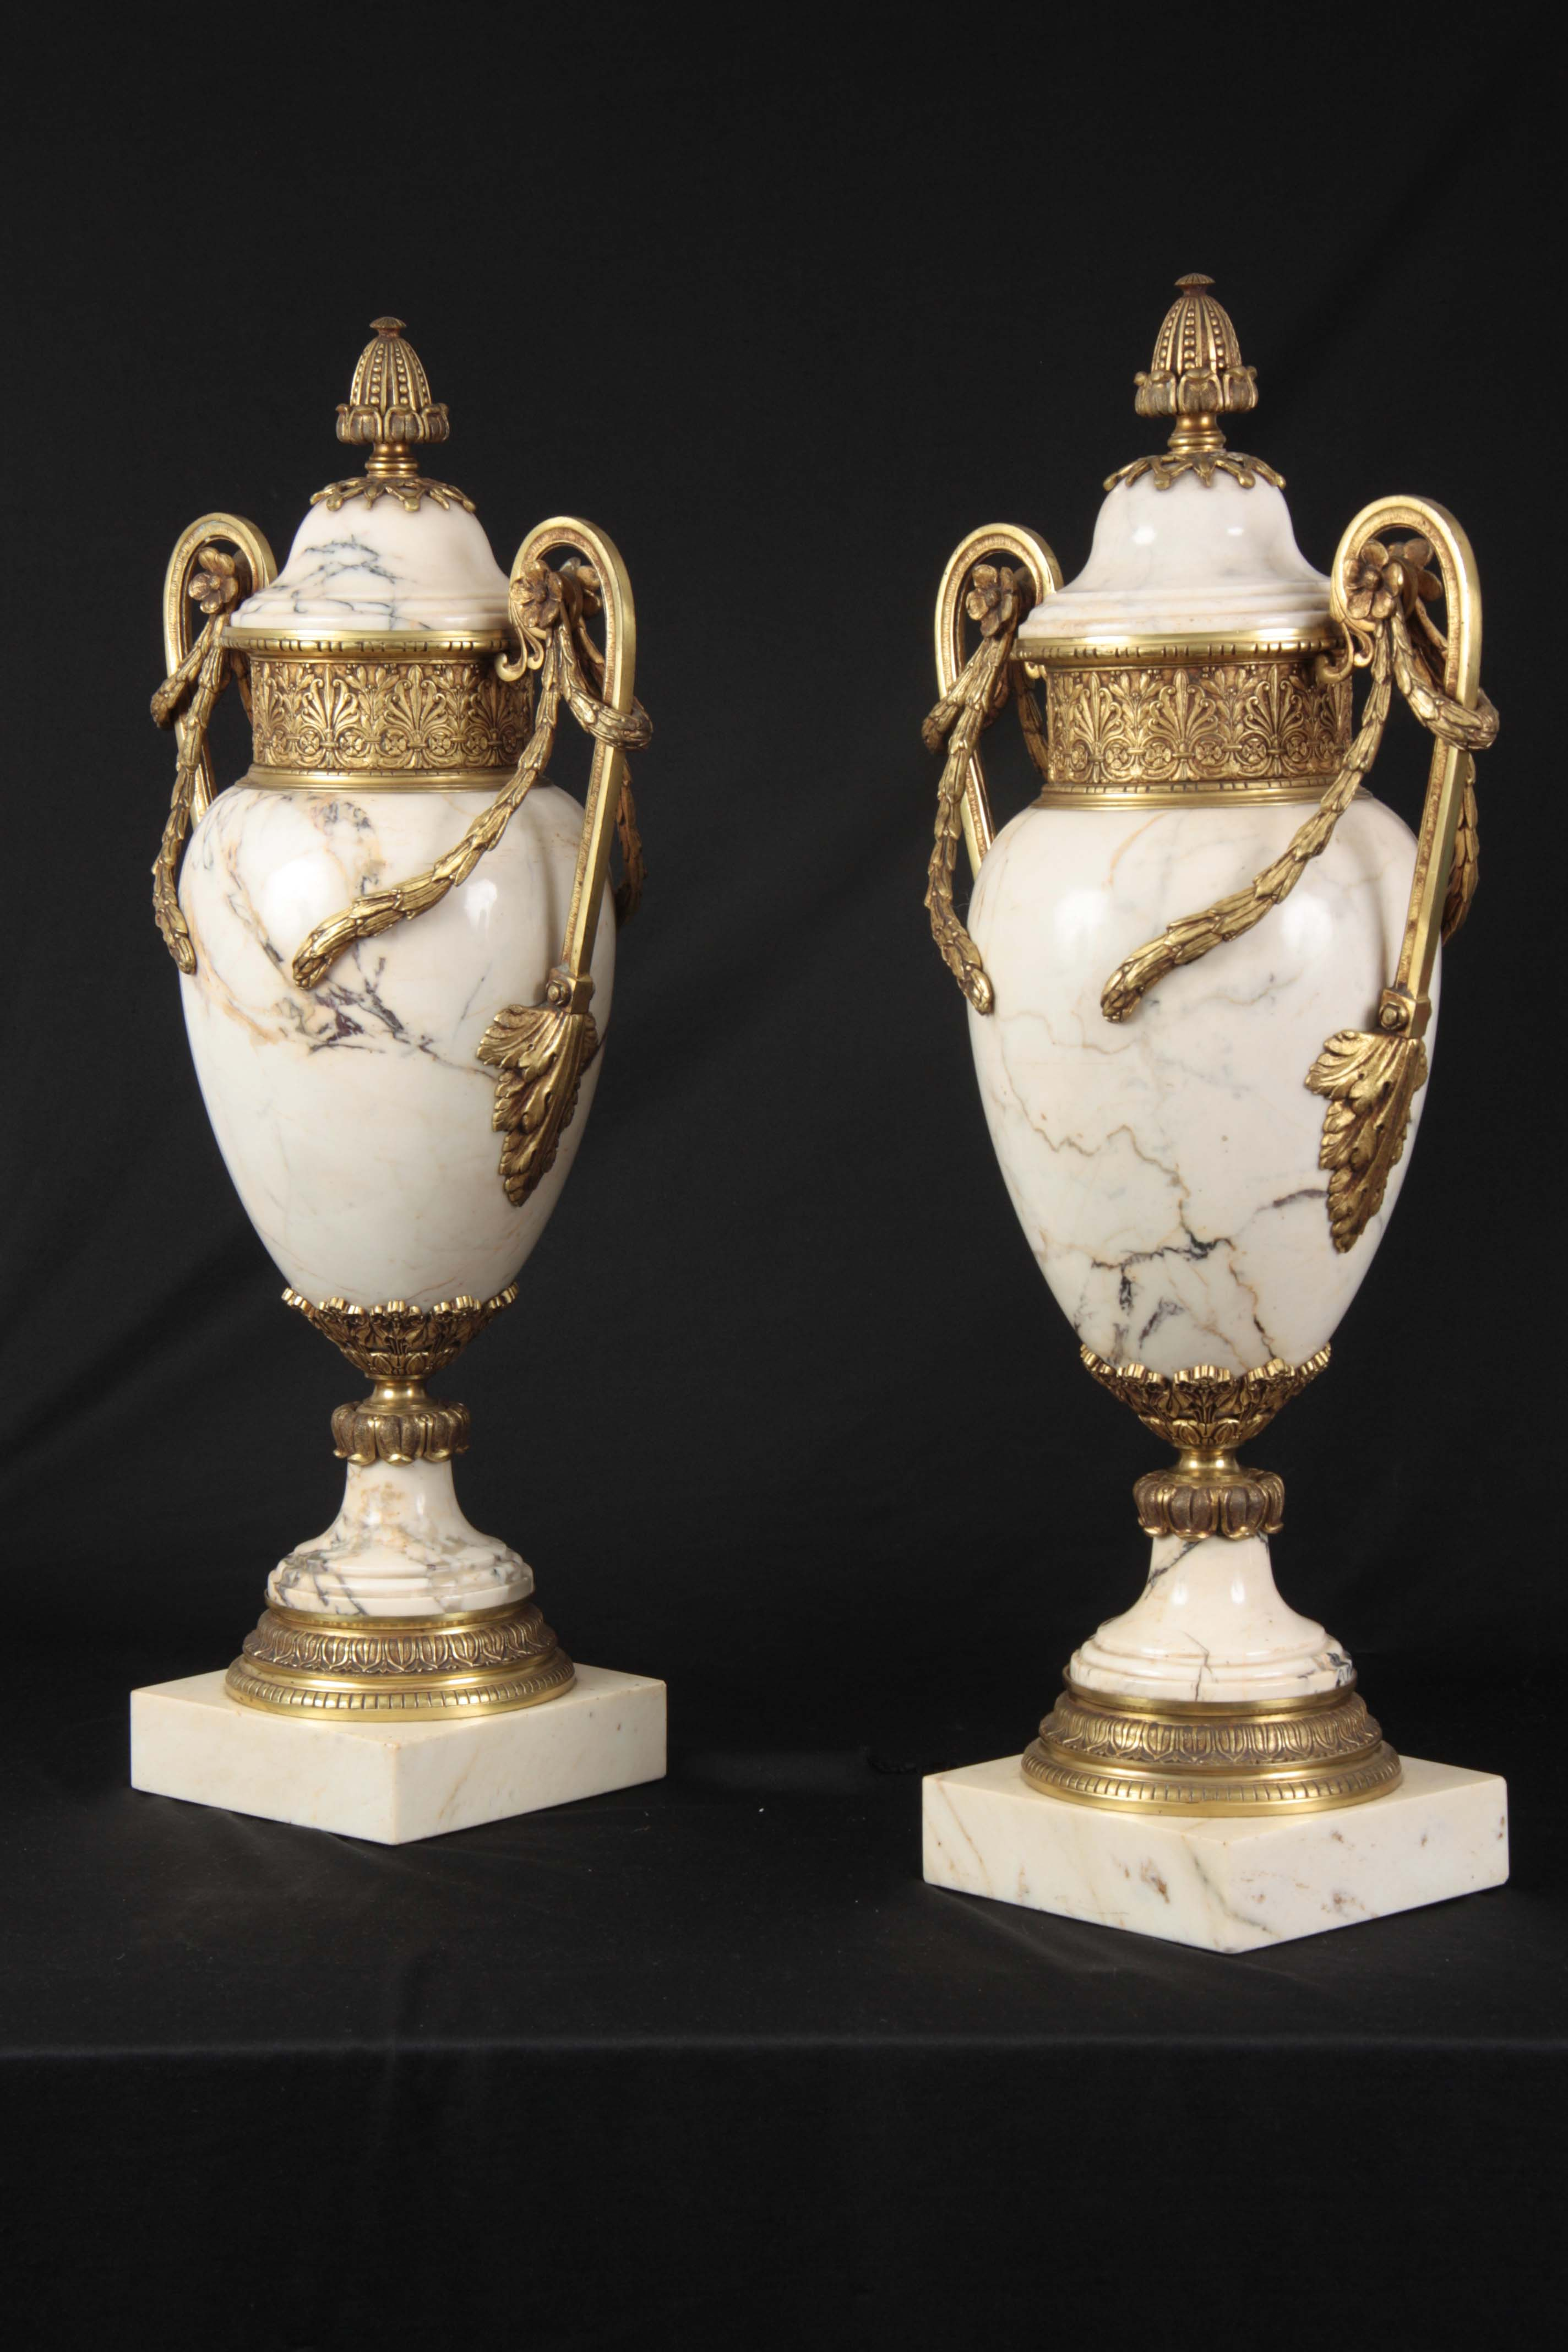 AN IMPRESSIVE PAIR OF FRENCH ORMOLU MOUNTED VEINED WHITE MARBLE CASOLETTES with floral swag work - Image 7 of 8